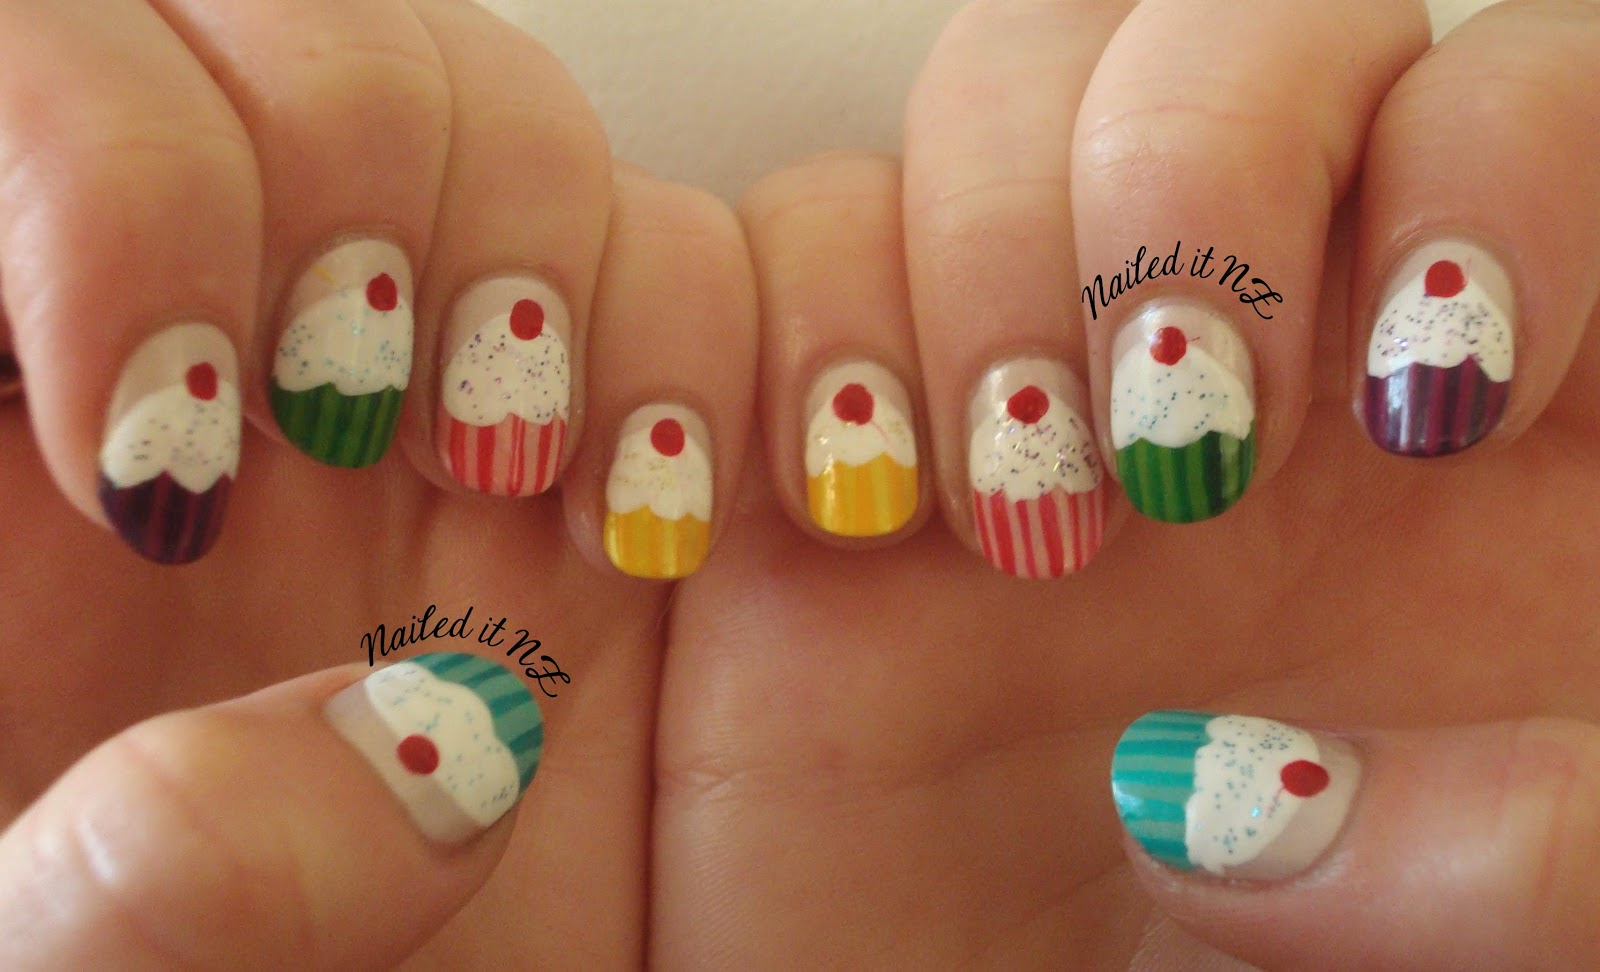 Nailed It NZ: Nail art for short nails #6: Cupcake Nails